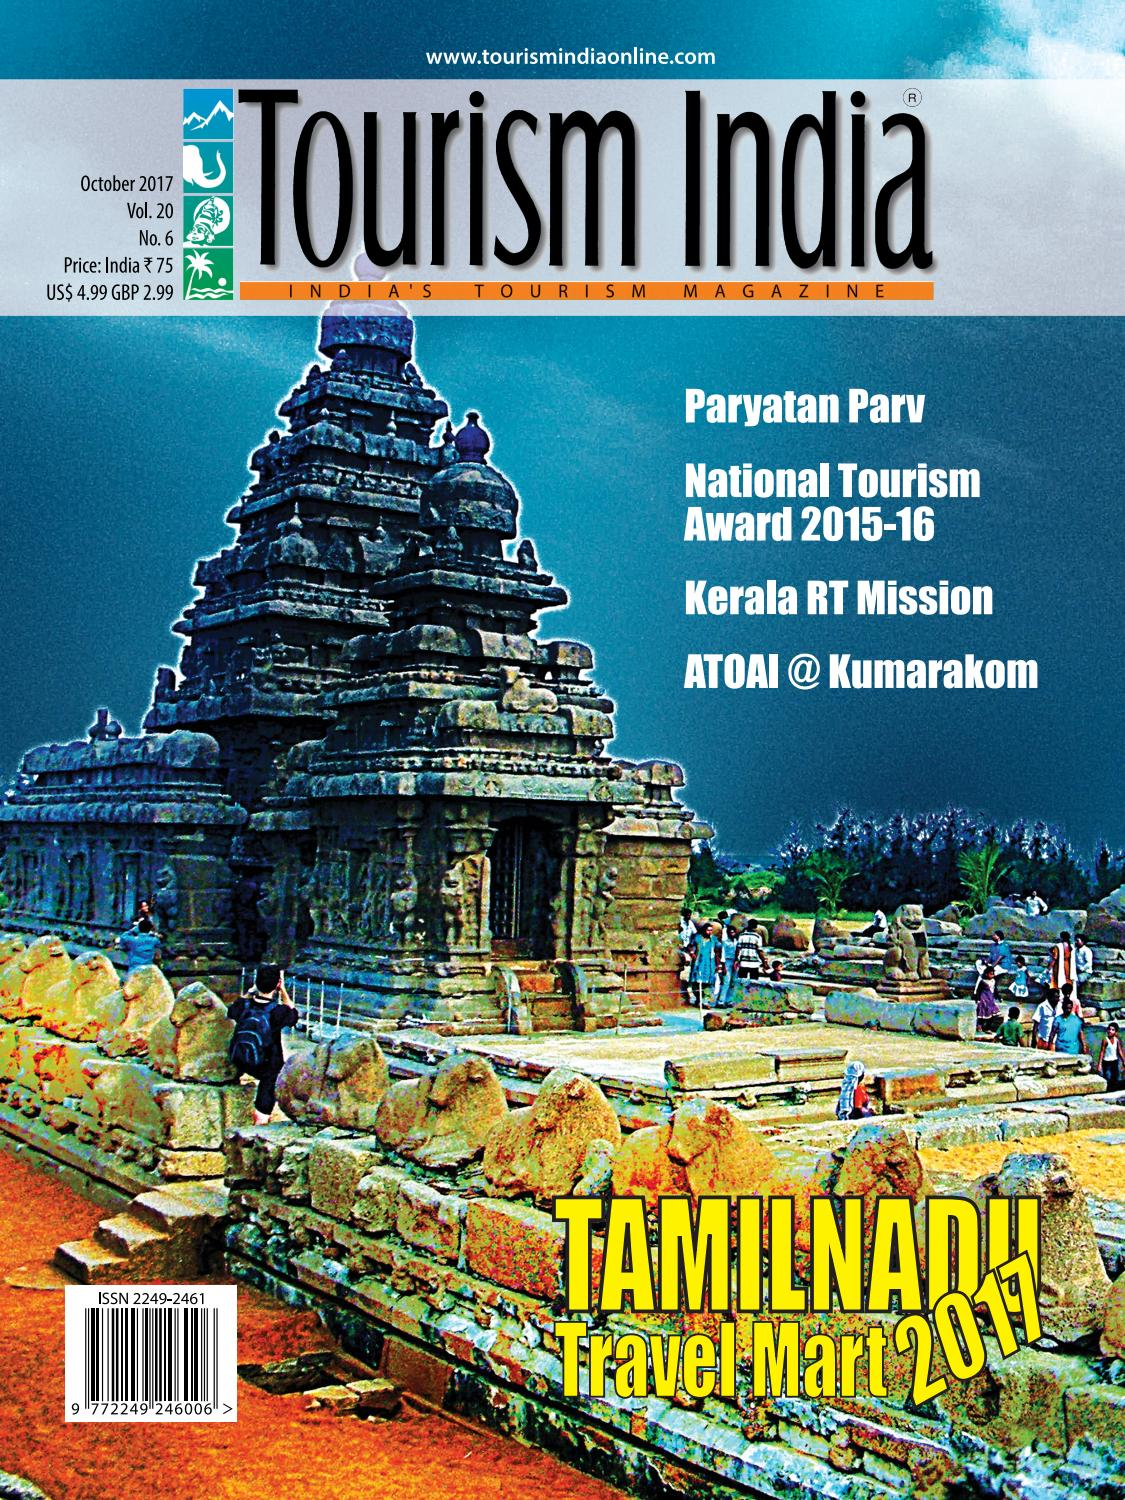 TOURISM INDIA OCTOBER 2017 by TOURISM INDIA - issuu